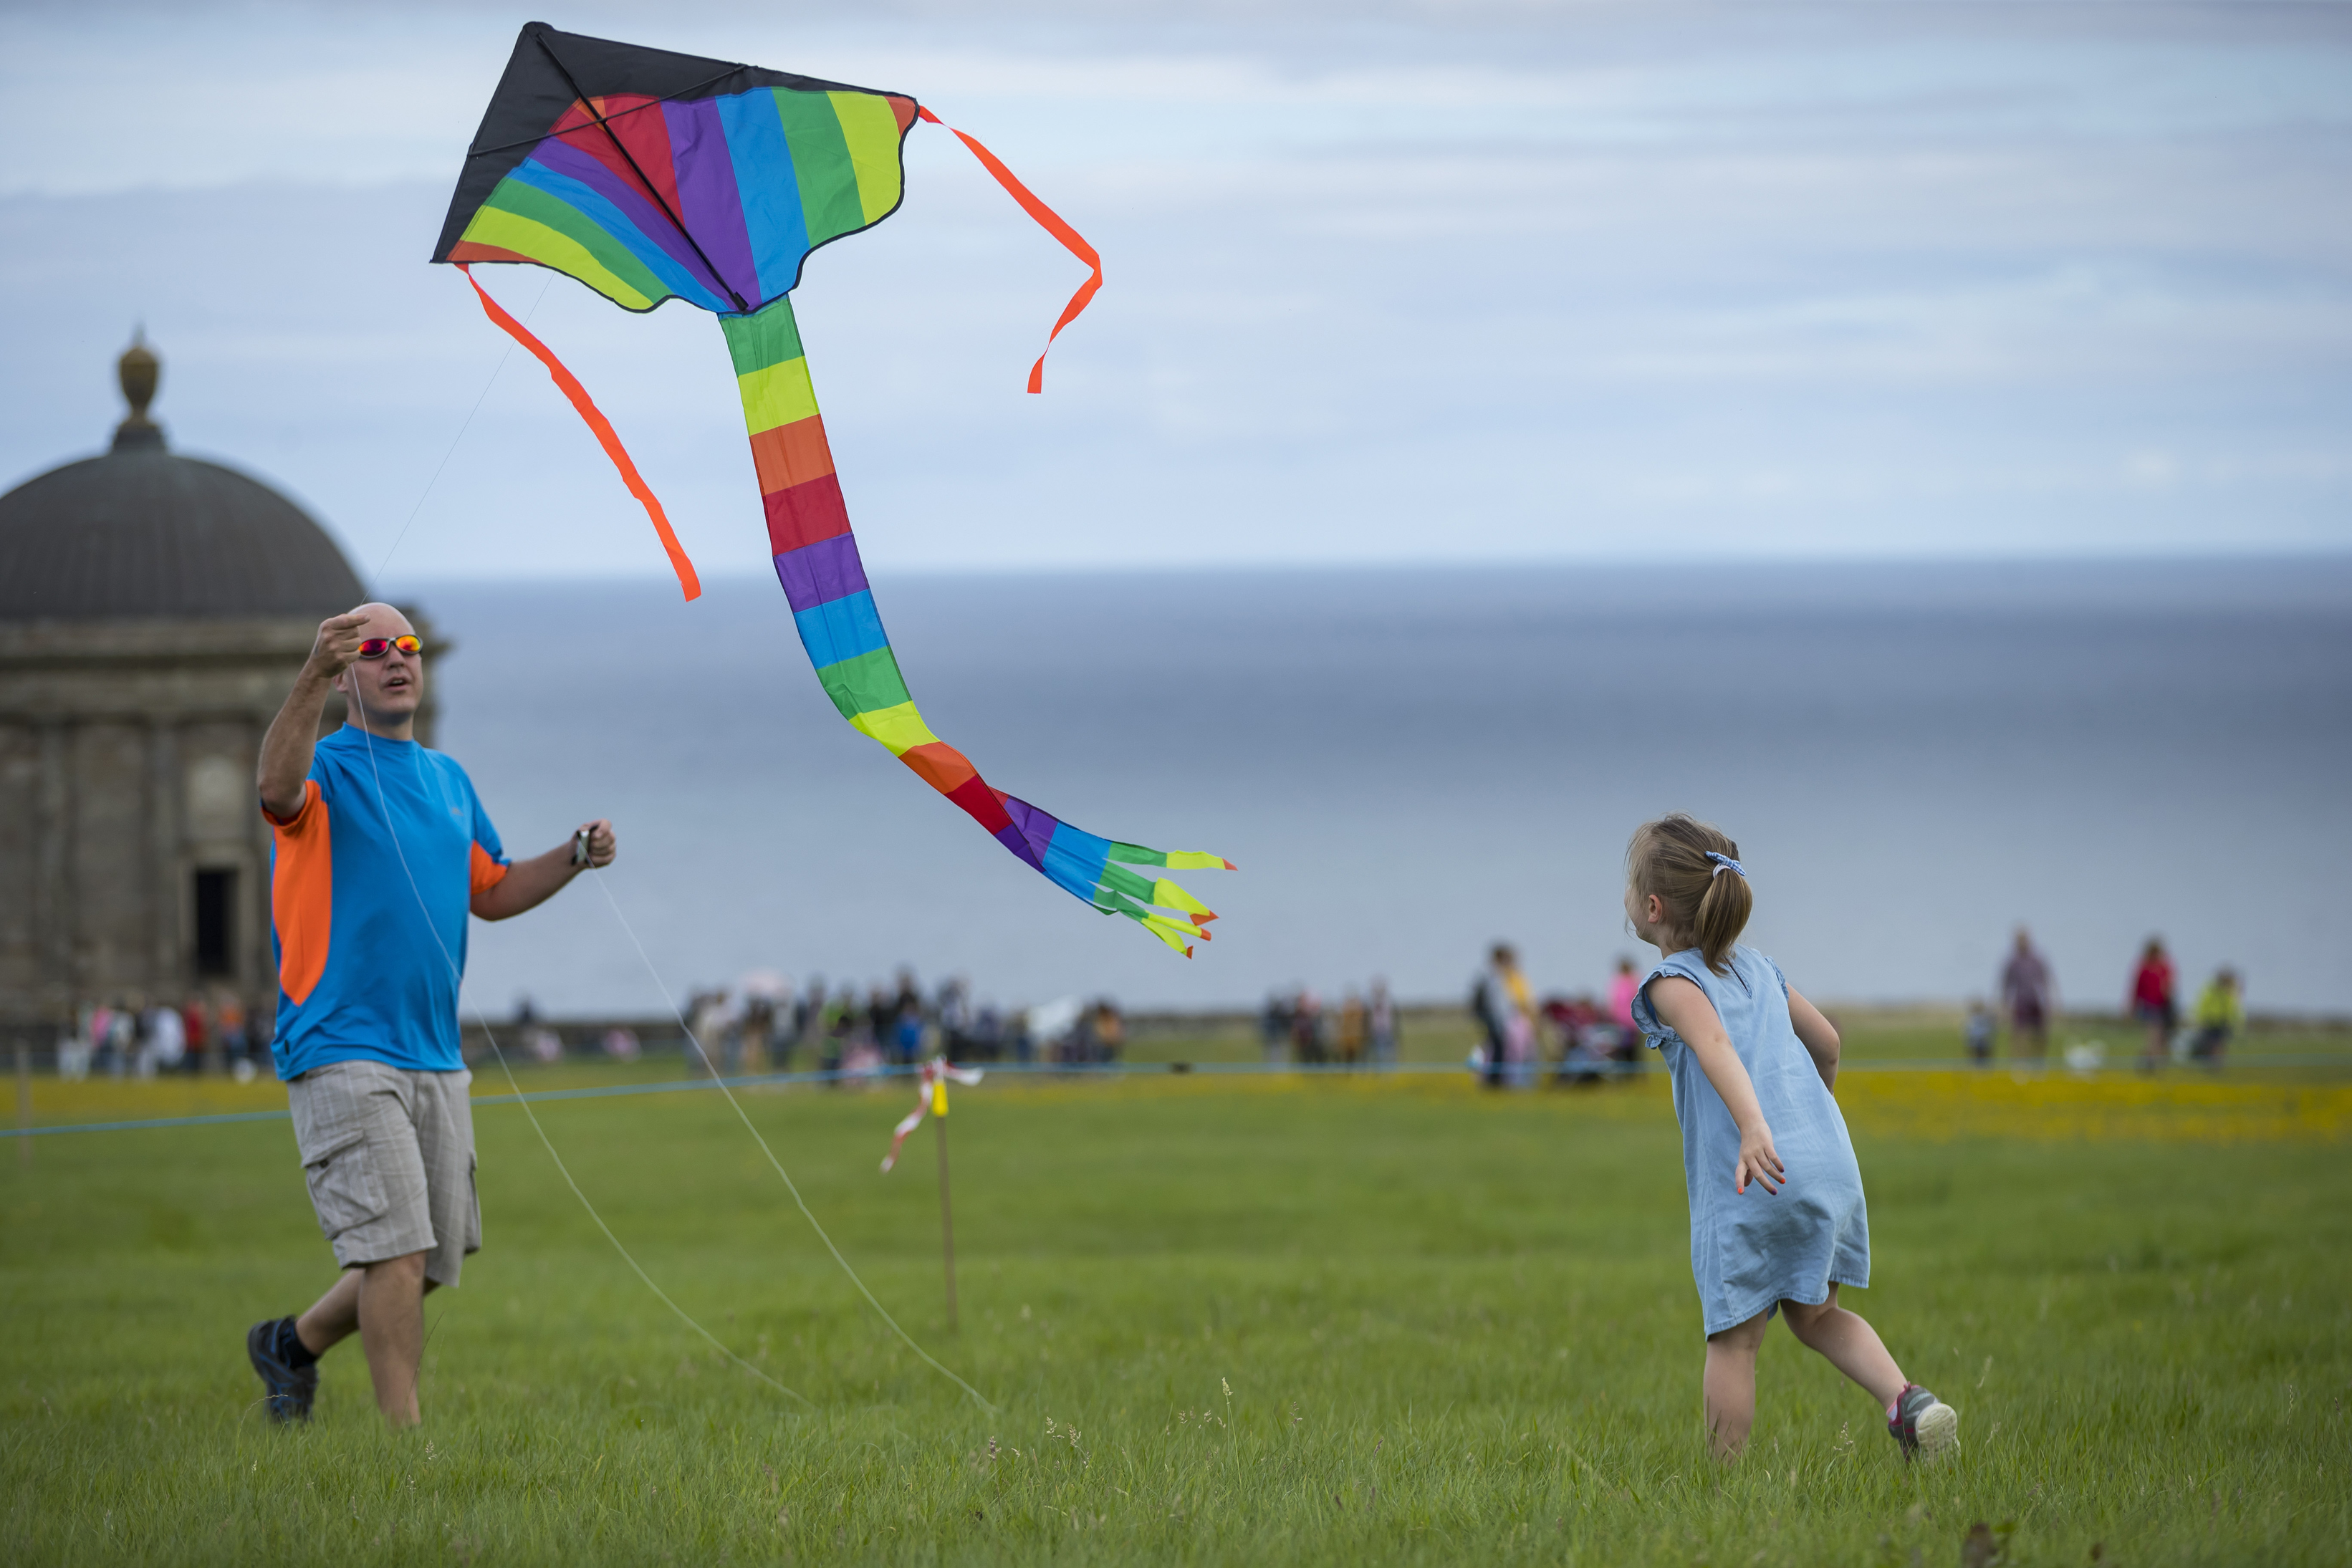 Let's go fly a kite (Chris Lacey/National Trust Images/PA)